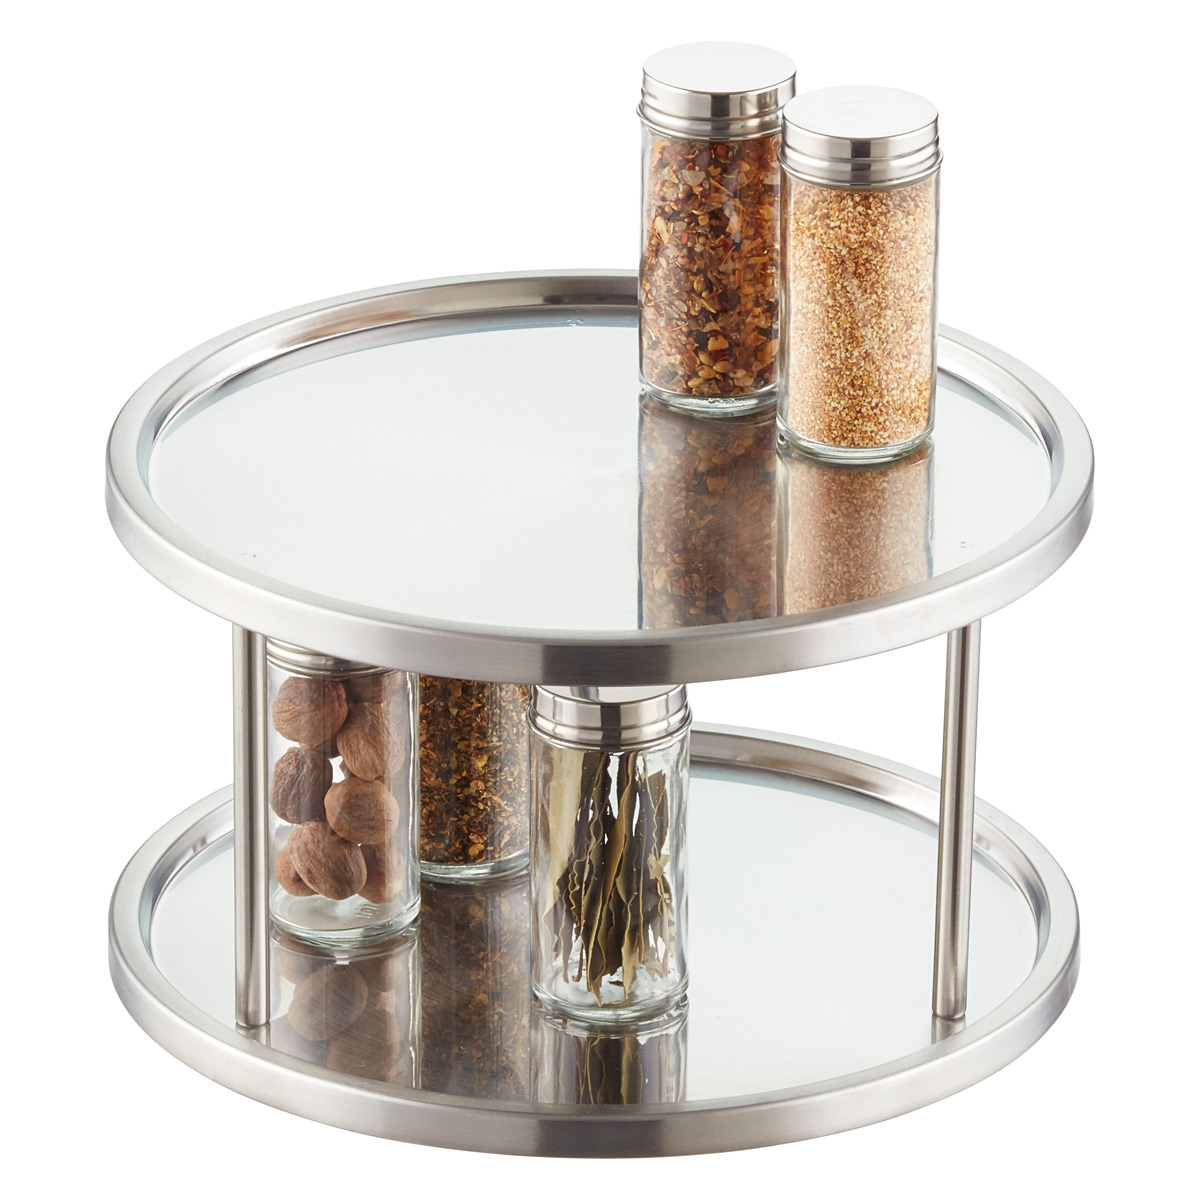 Superieur 2 Tier Stainless Steel Lazy Susan